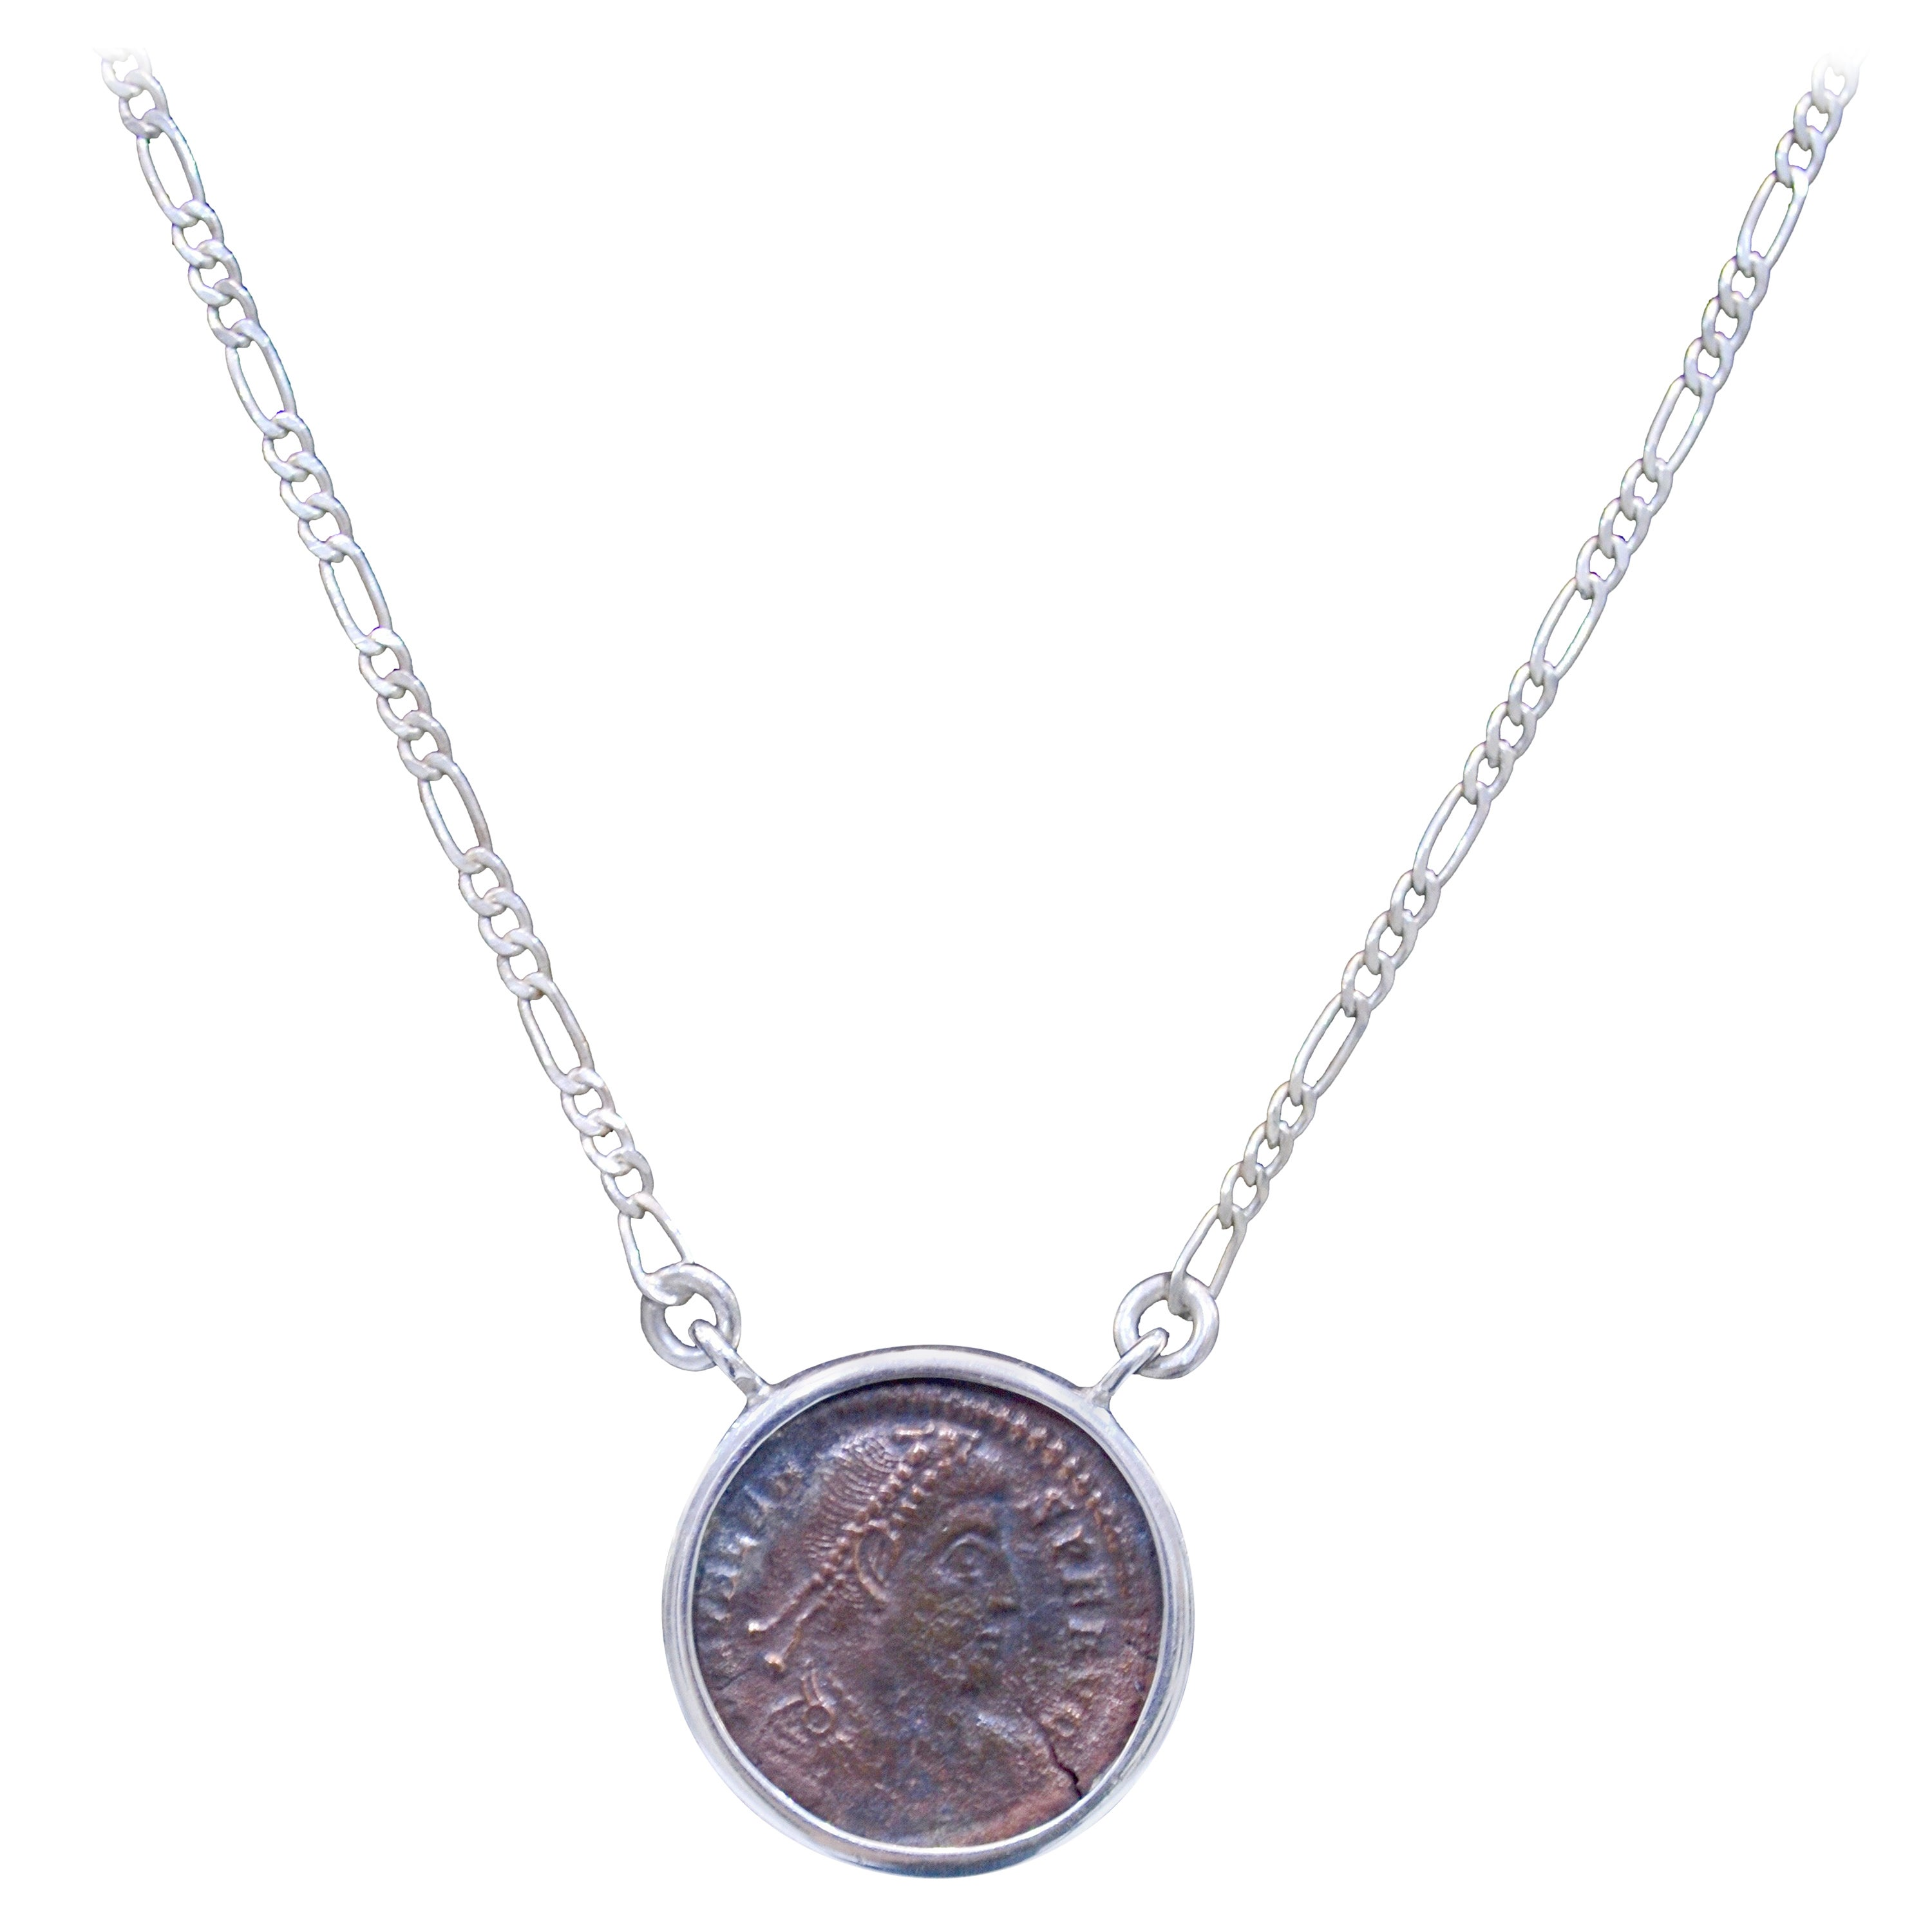 ef18aee51 Constantine The Great Coin Silver Necklace at 1stdibs